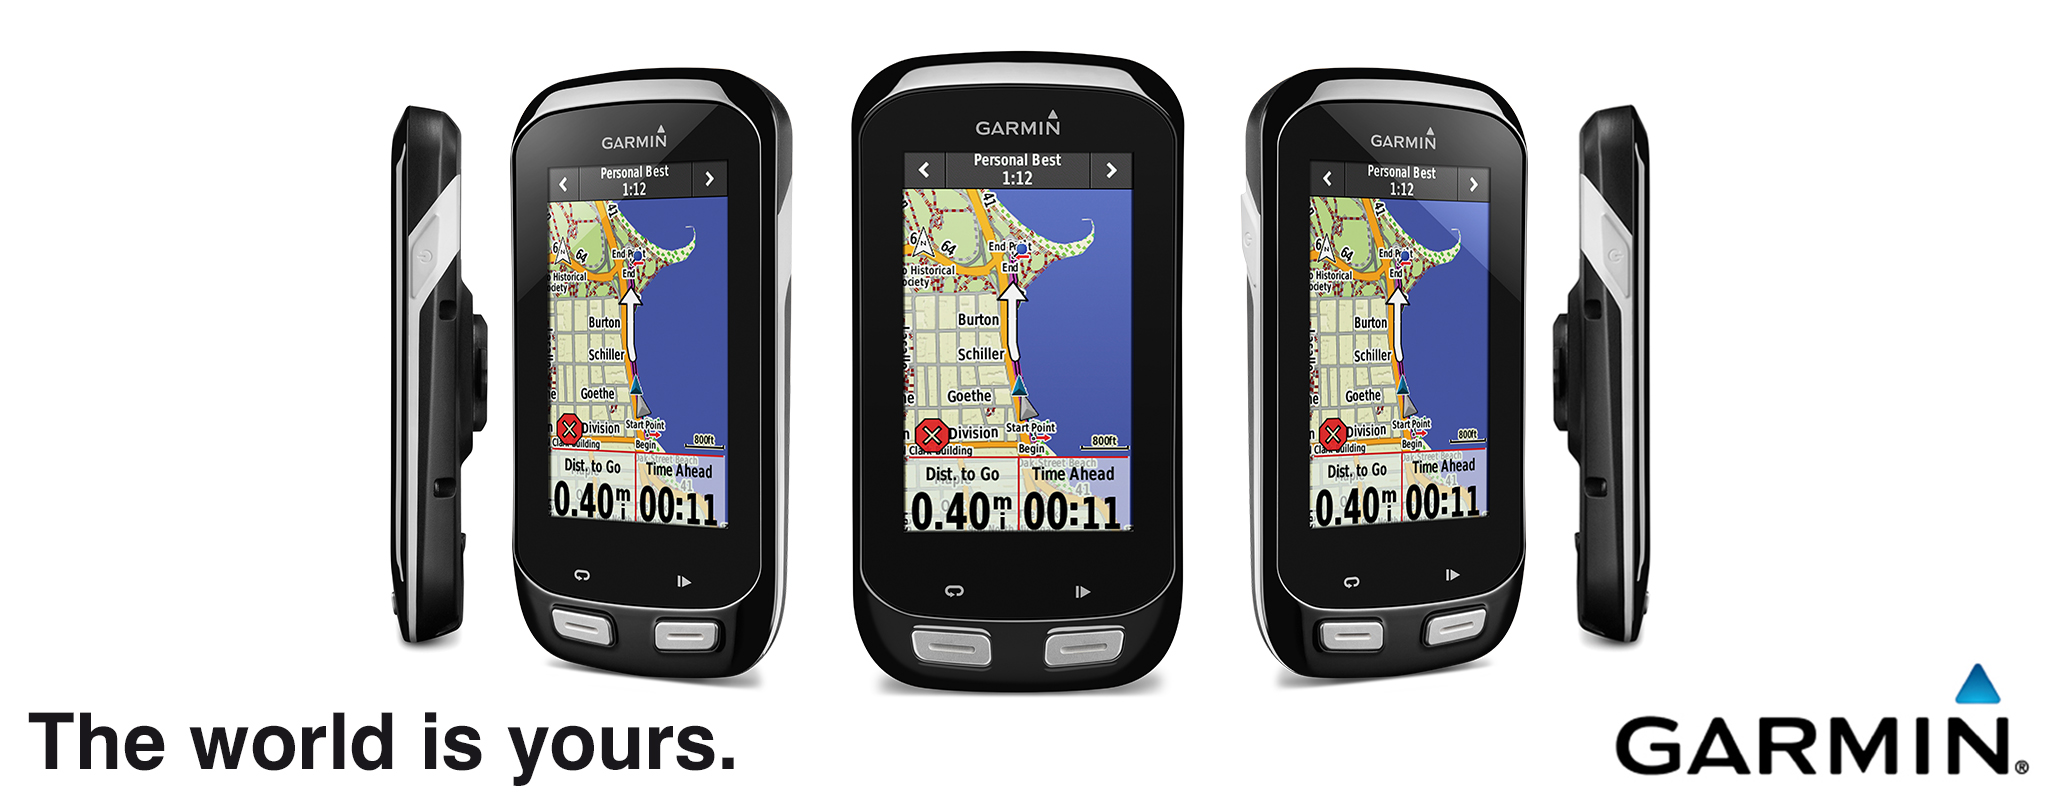 The World is yours. Garmin.